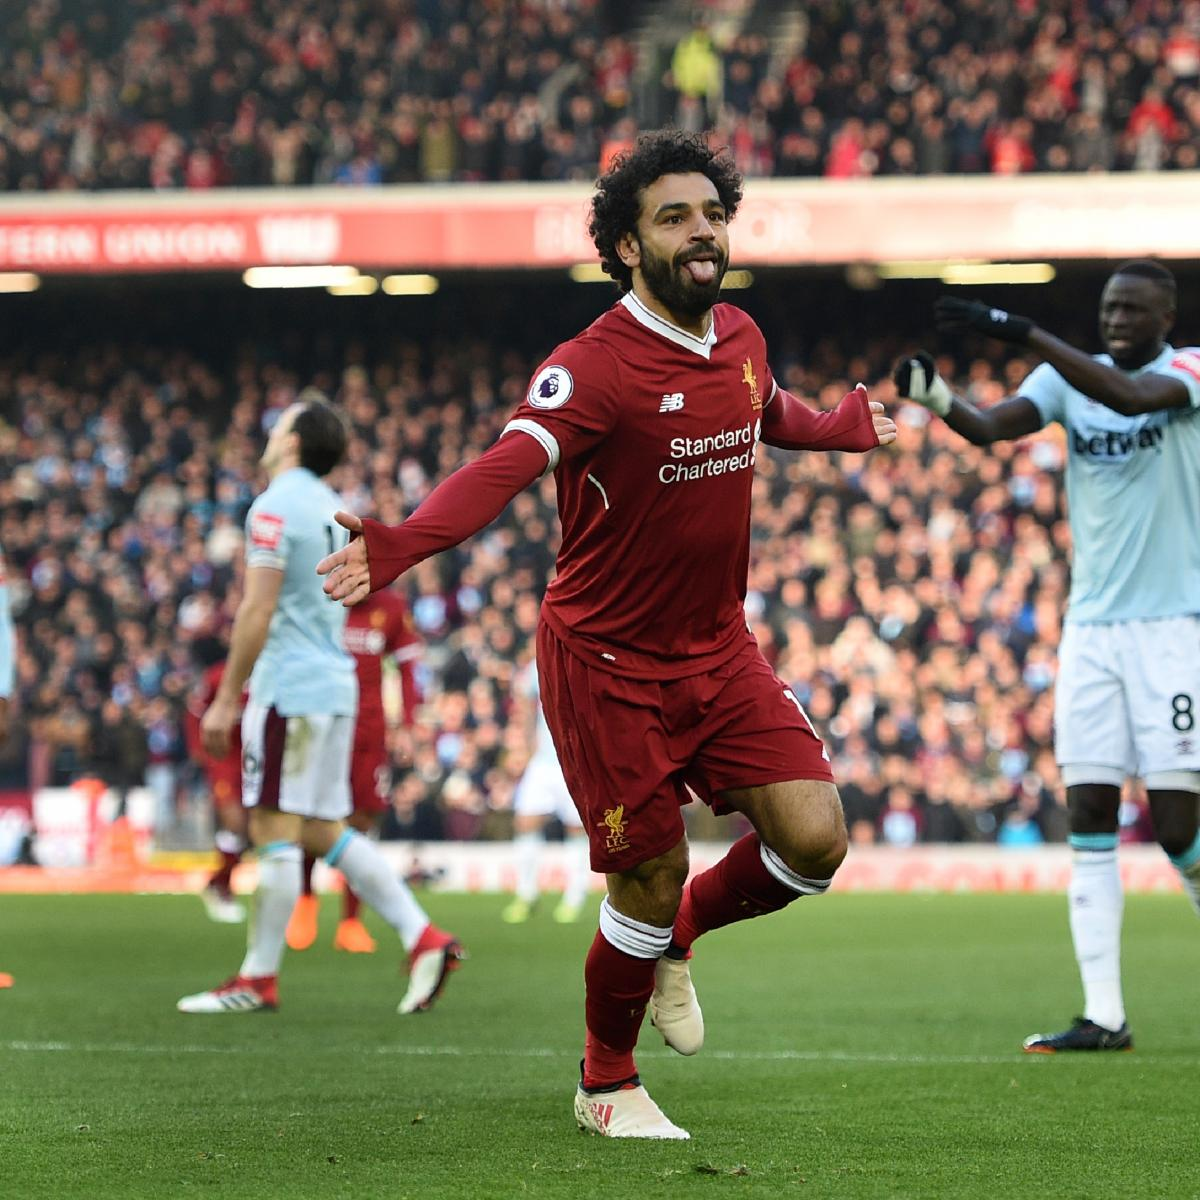 Tottenham 3 Fulham 1 Match Highlights Harry Kane Scores: Mohamed Salah Scores As Liverpool Cruise Past West Ham In